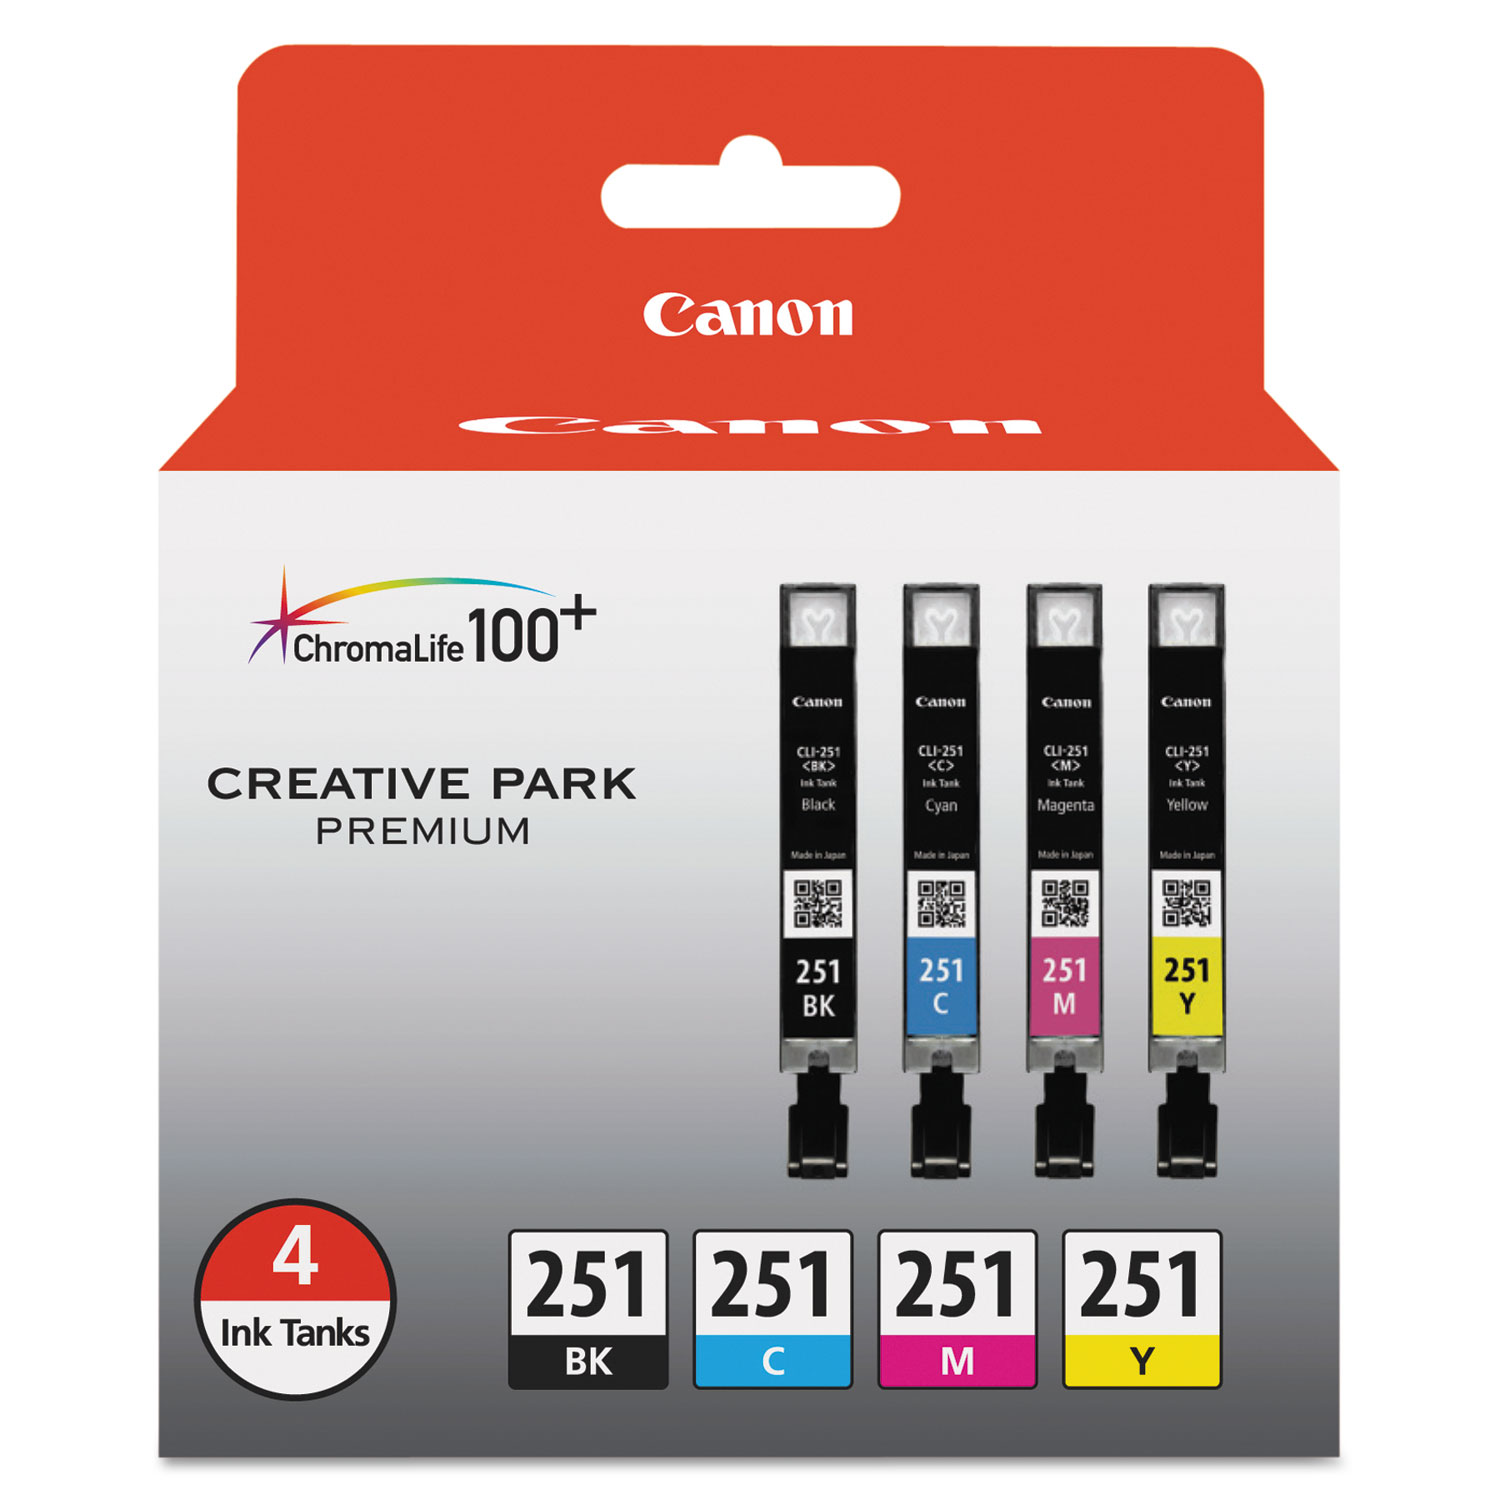 6513B004 (CLI-251) ChromaLife100+ Ink, Black/Cyan/Magenta/Yellow, 4/PK